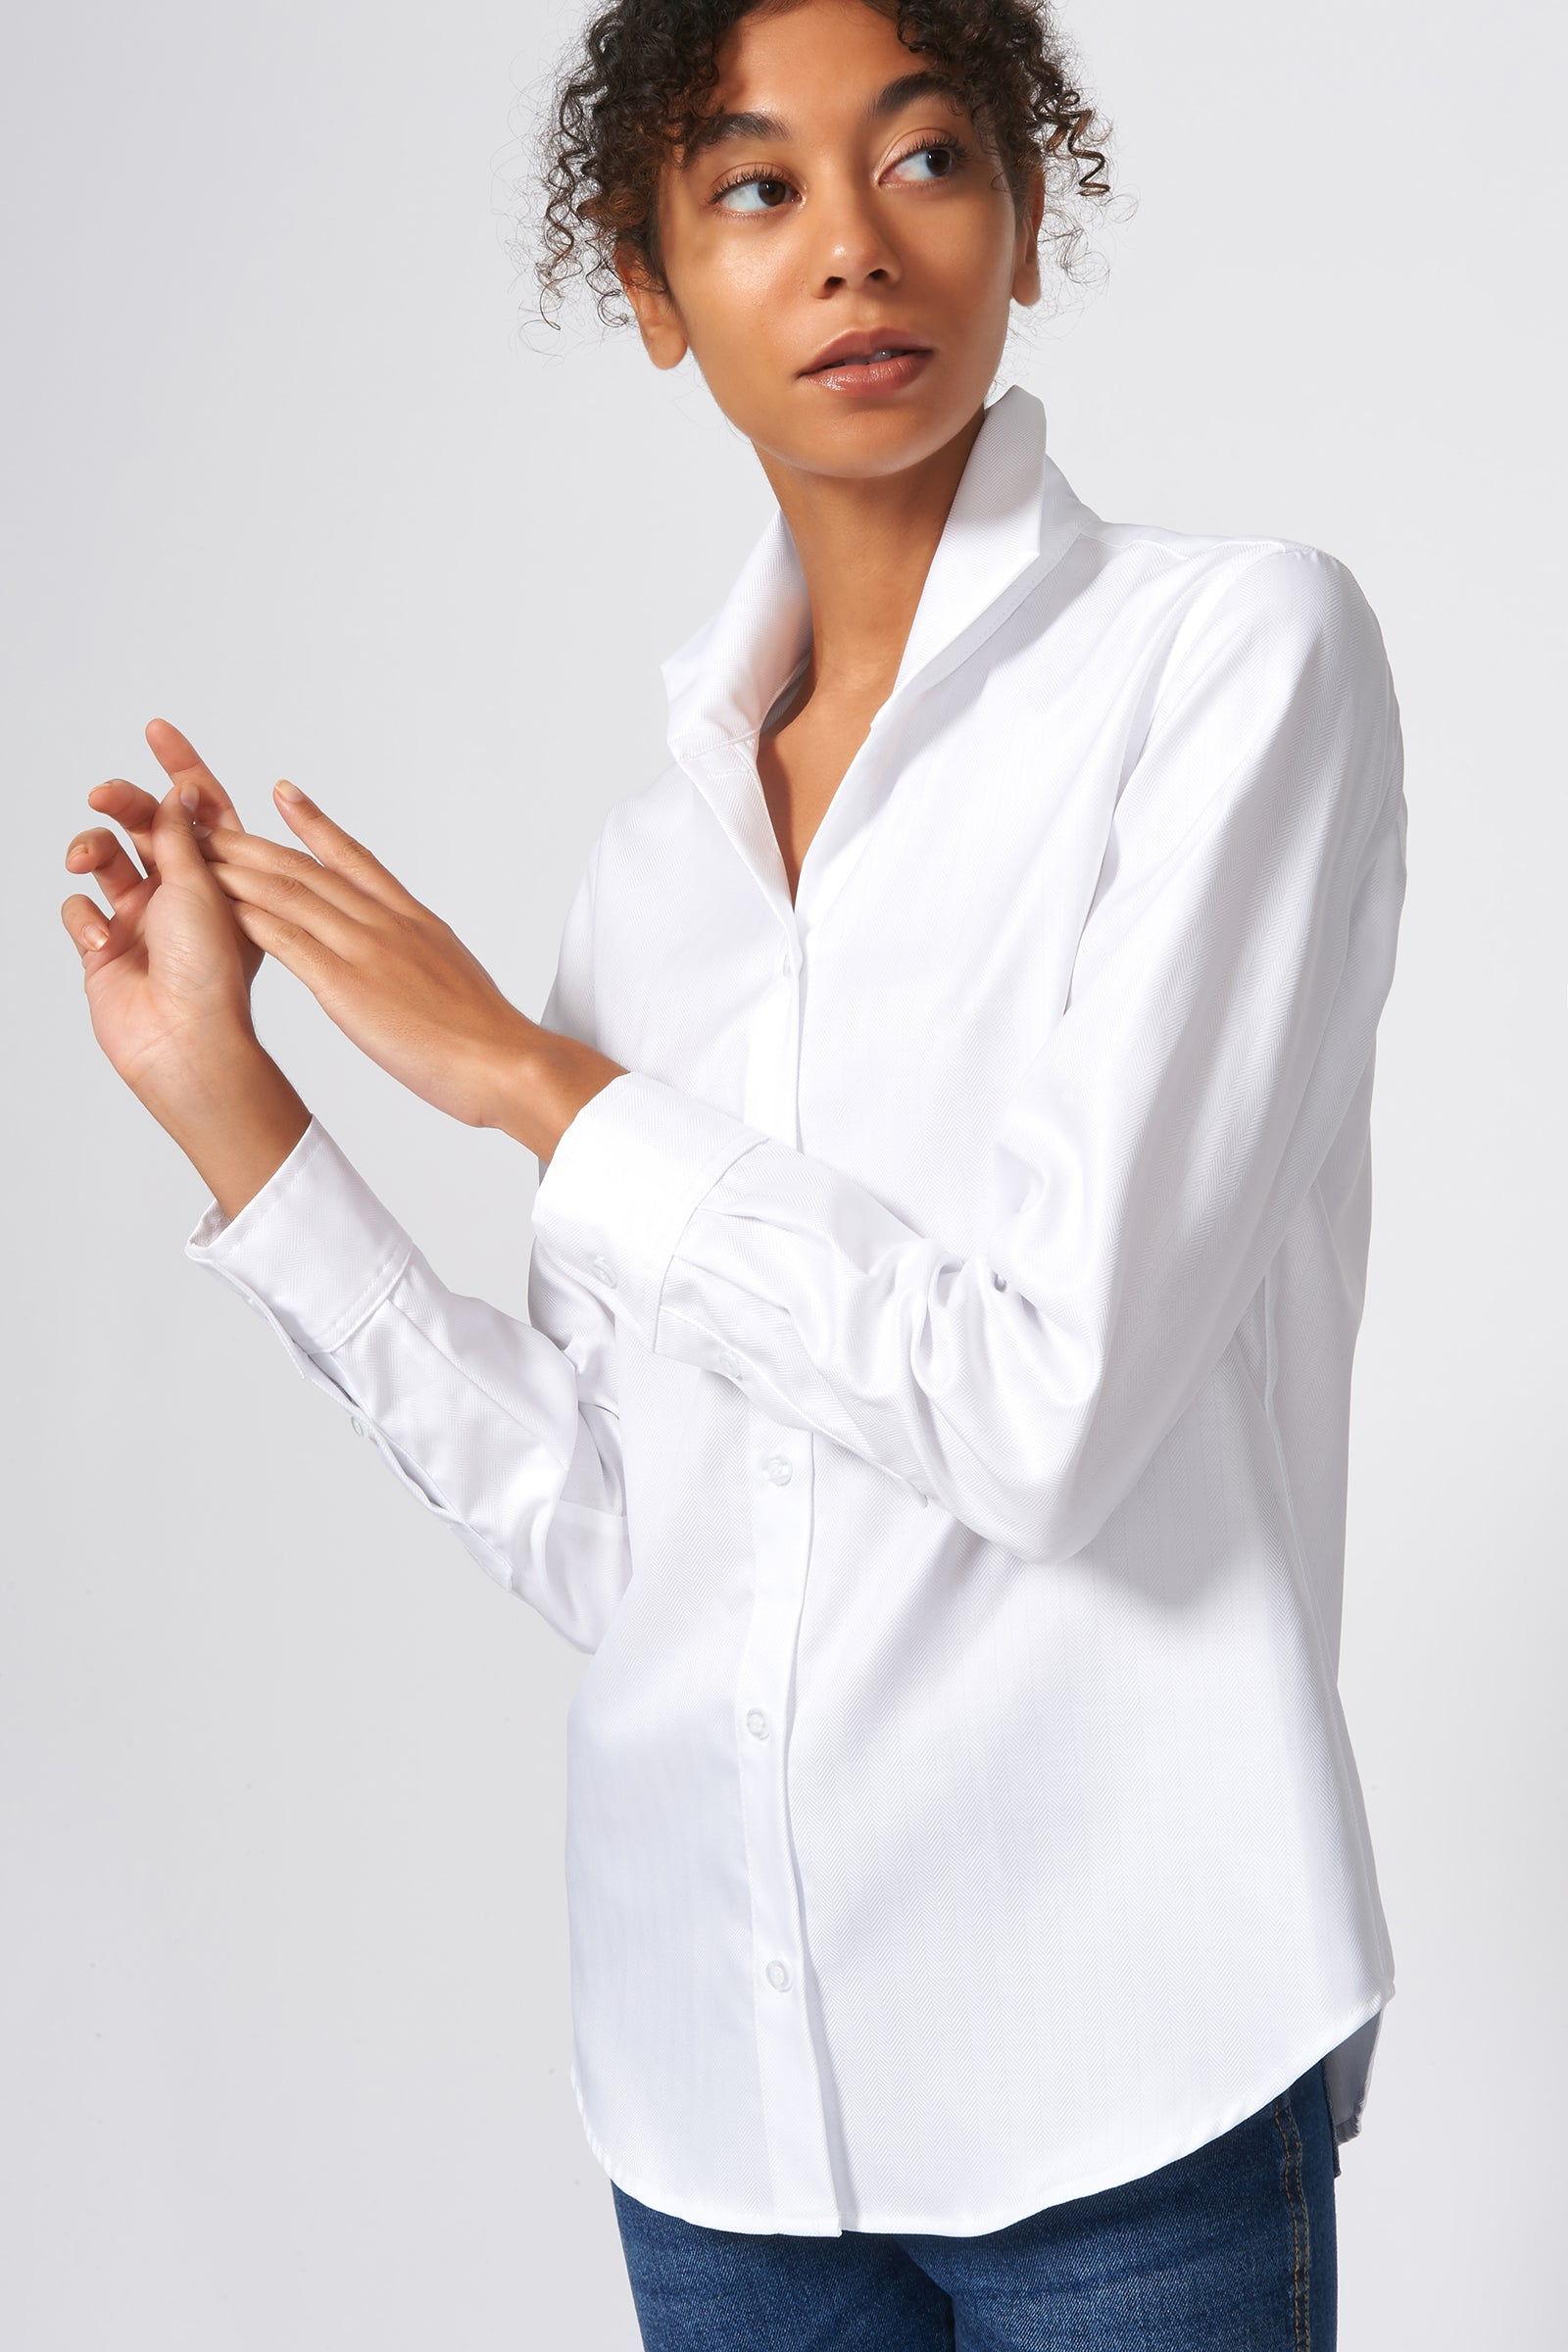 Kal Rieman Ginna Box Pleat Shirt in White Fine Herringbone on Model Front Side View